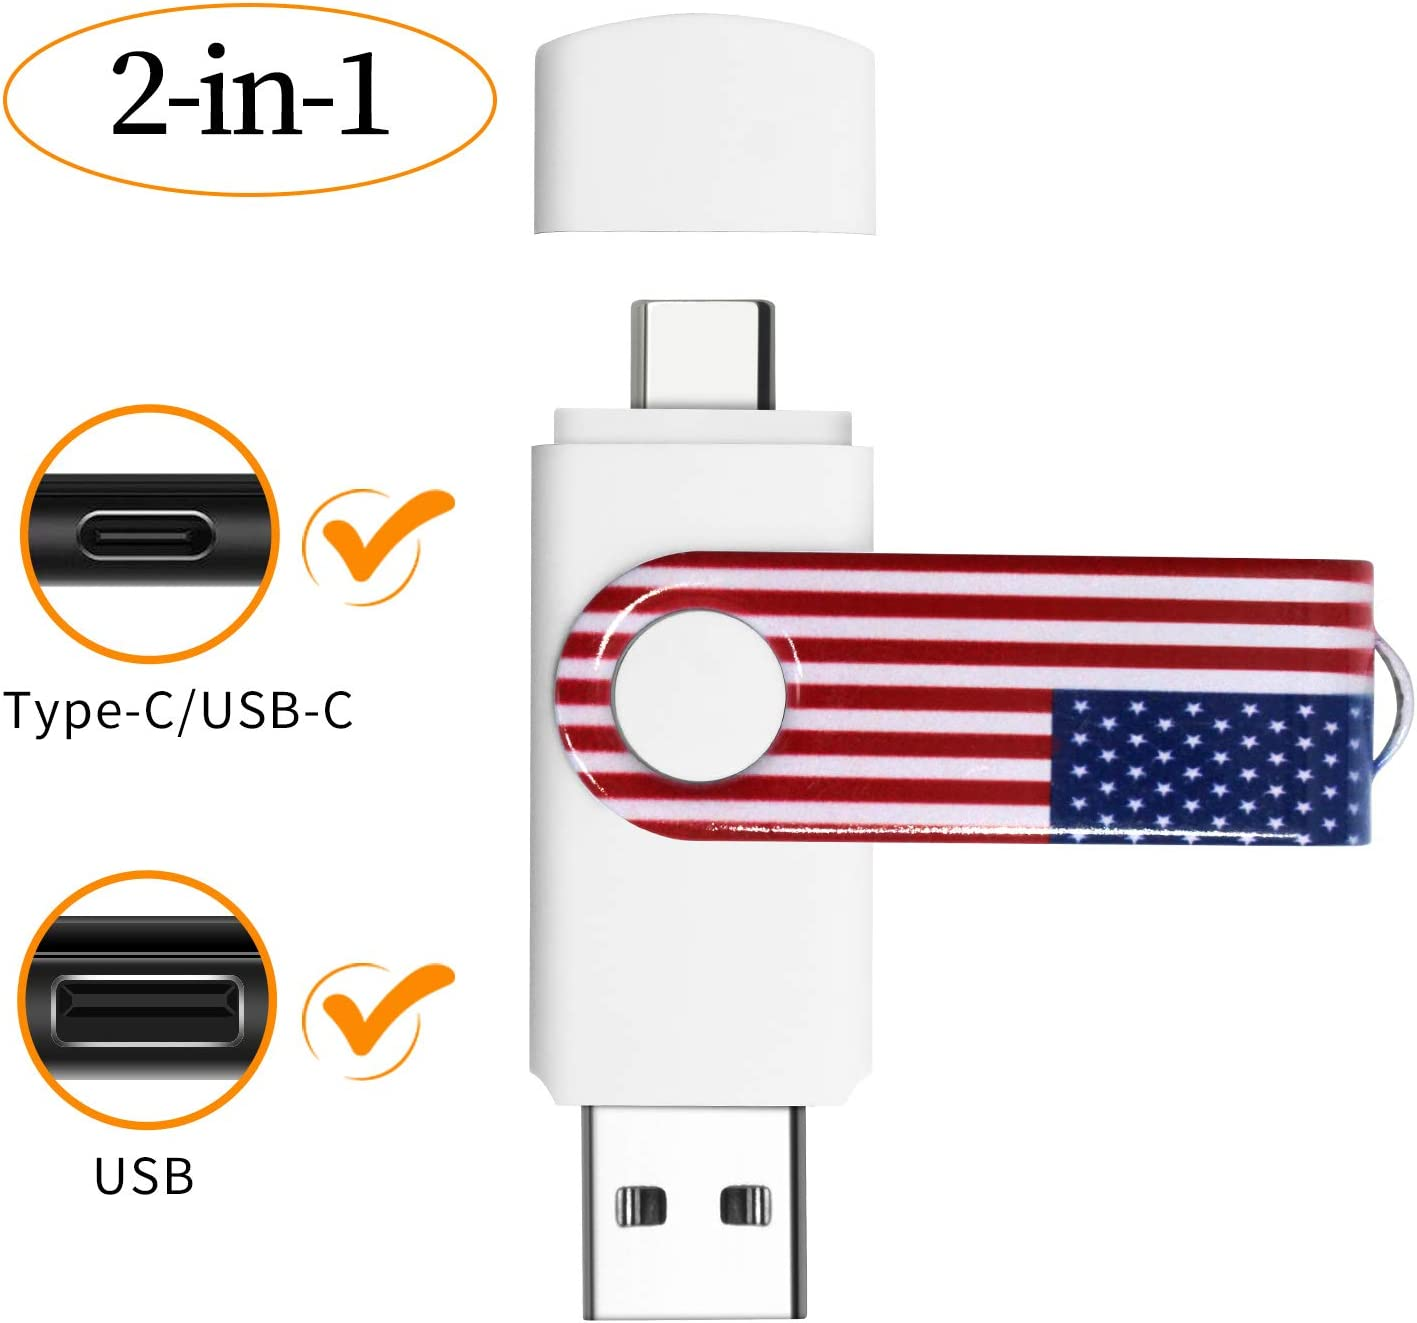 VATAPO 2 in 1 256GB 3.0/3.1 Type C/USB C Flash Drive for Android Phones,Tablets.Laptop,Desktop.Photo Stick for Mobile Phones with Type C Interface.(Comes with a Micro Adapter